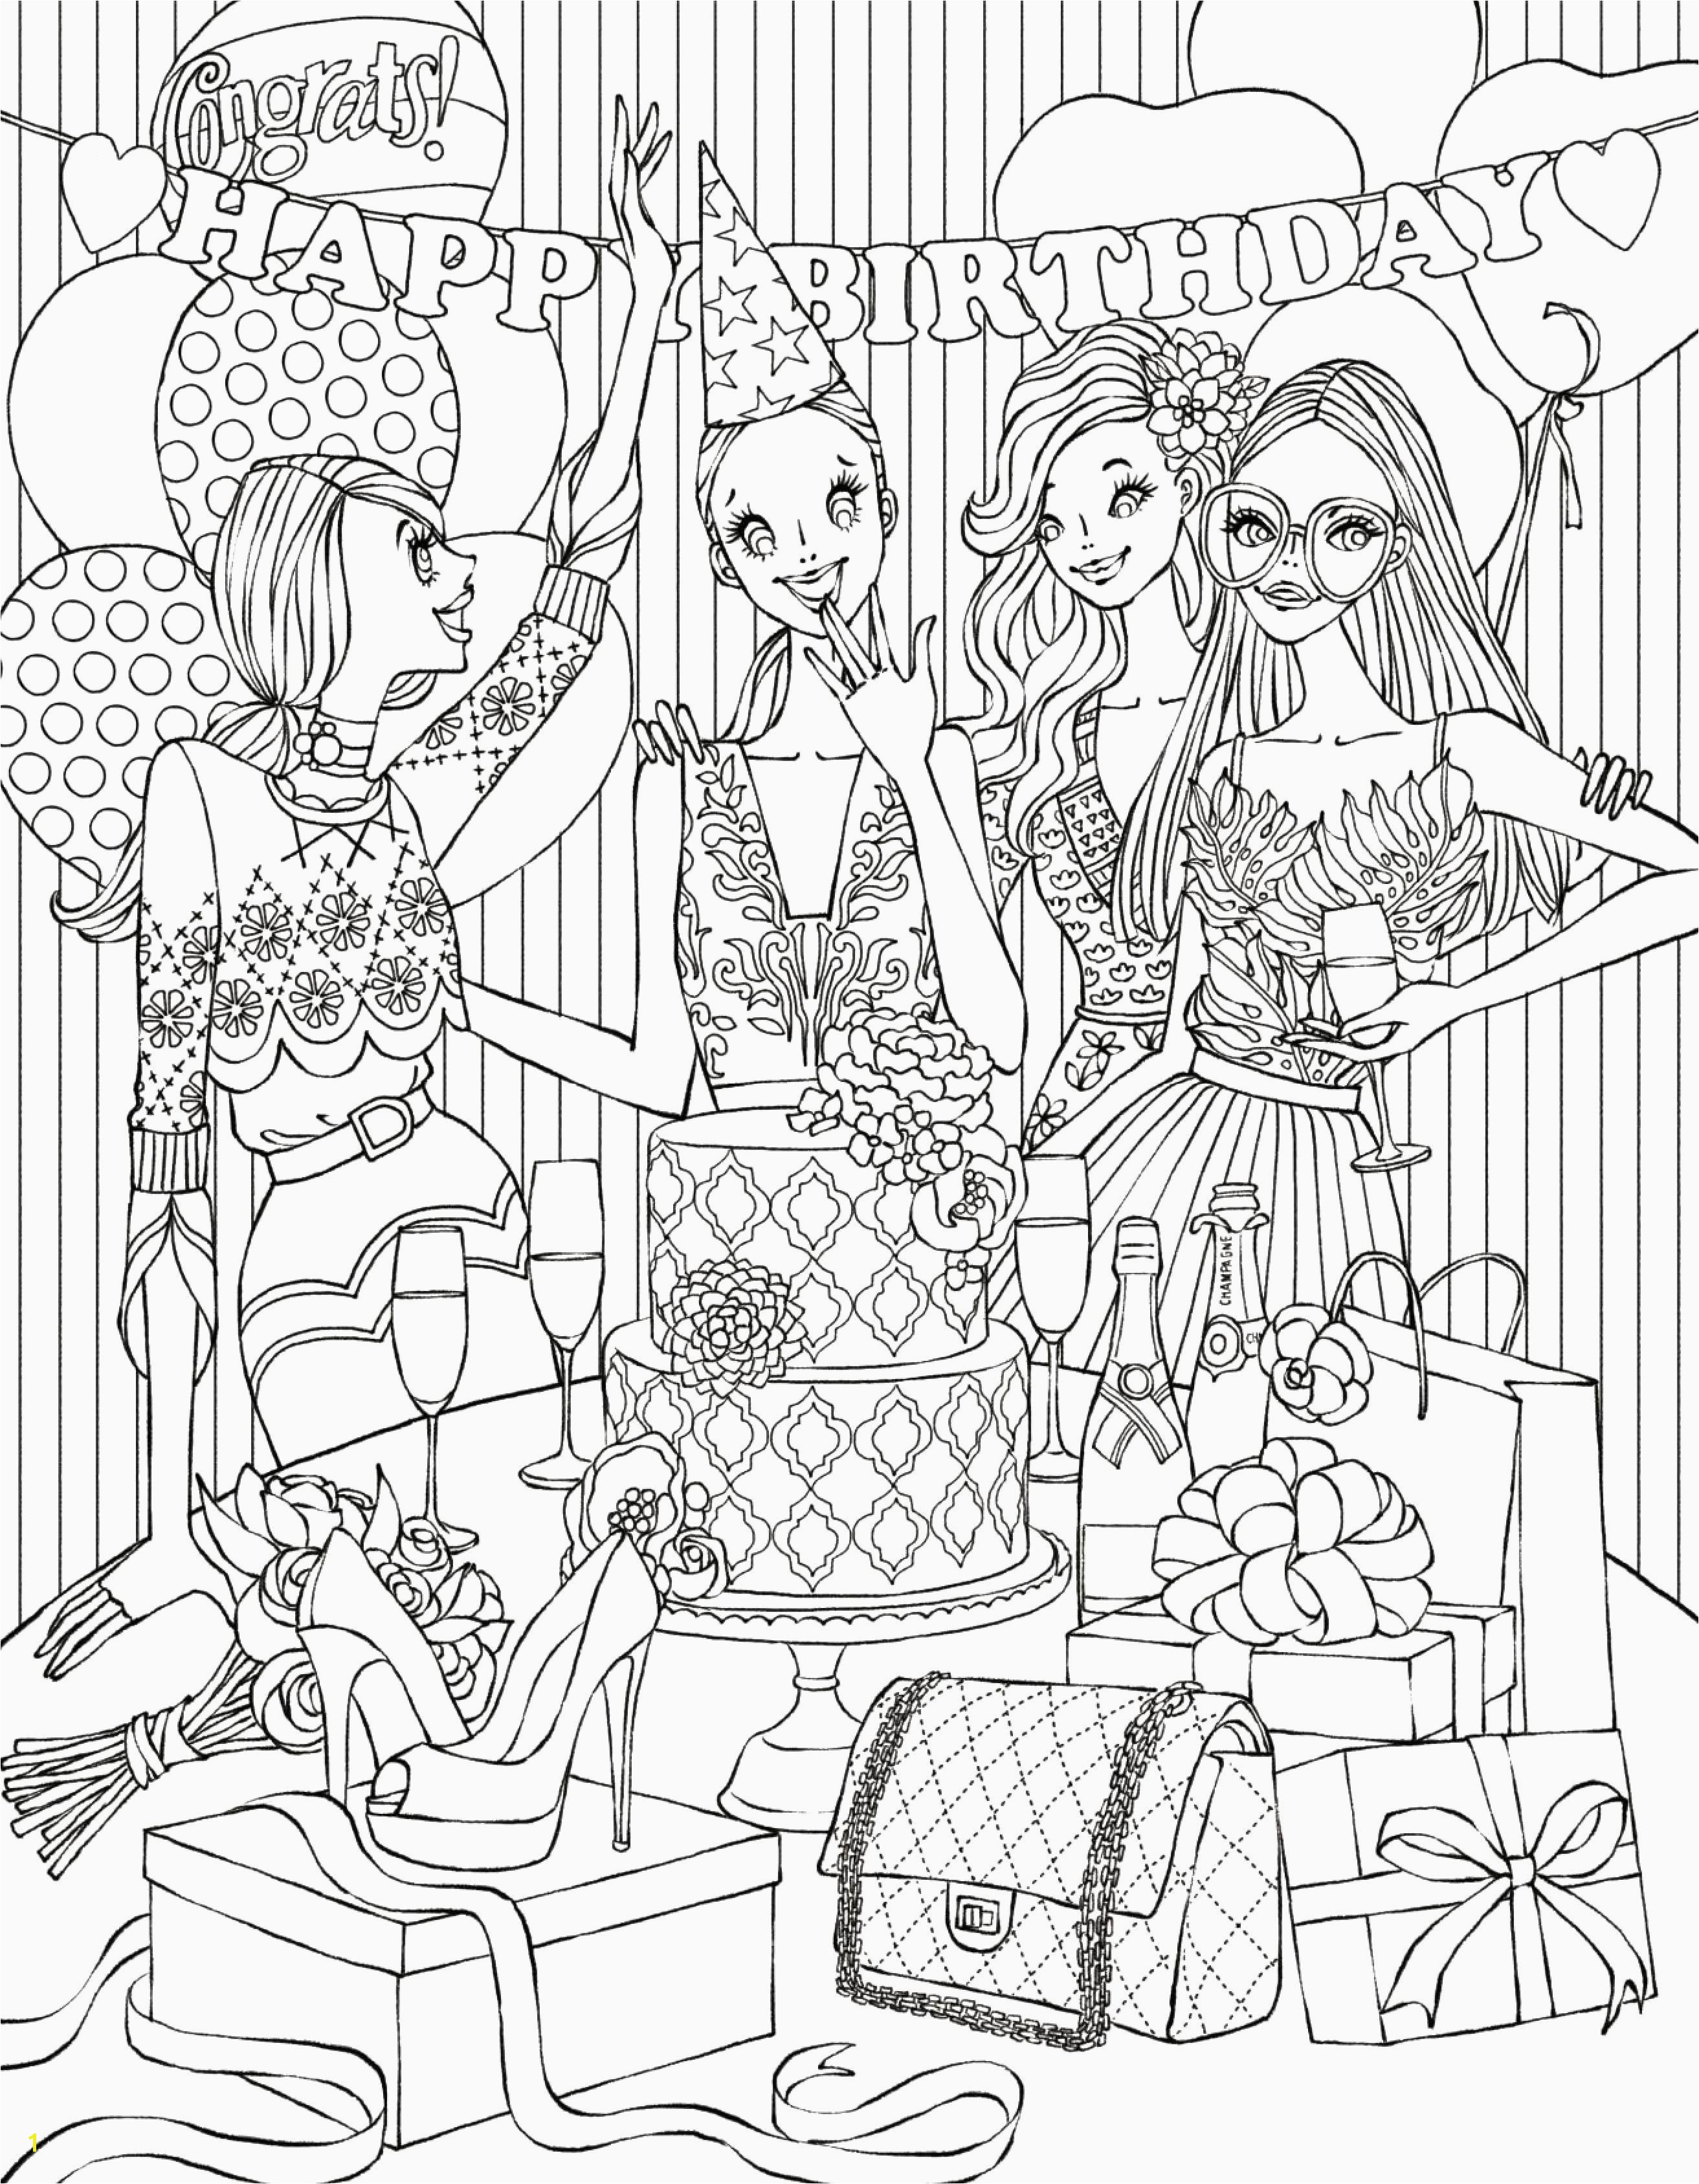 Free Coloring Book Pages to Print New Fresh Colering Beautiful Coloring Papers 0d Archives Se Telefonyfo